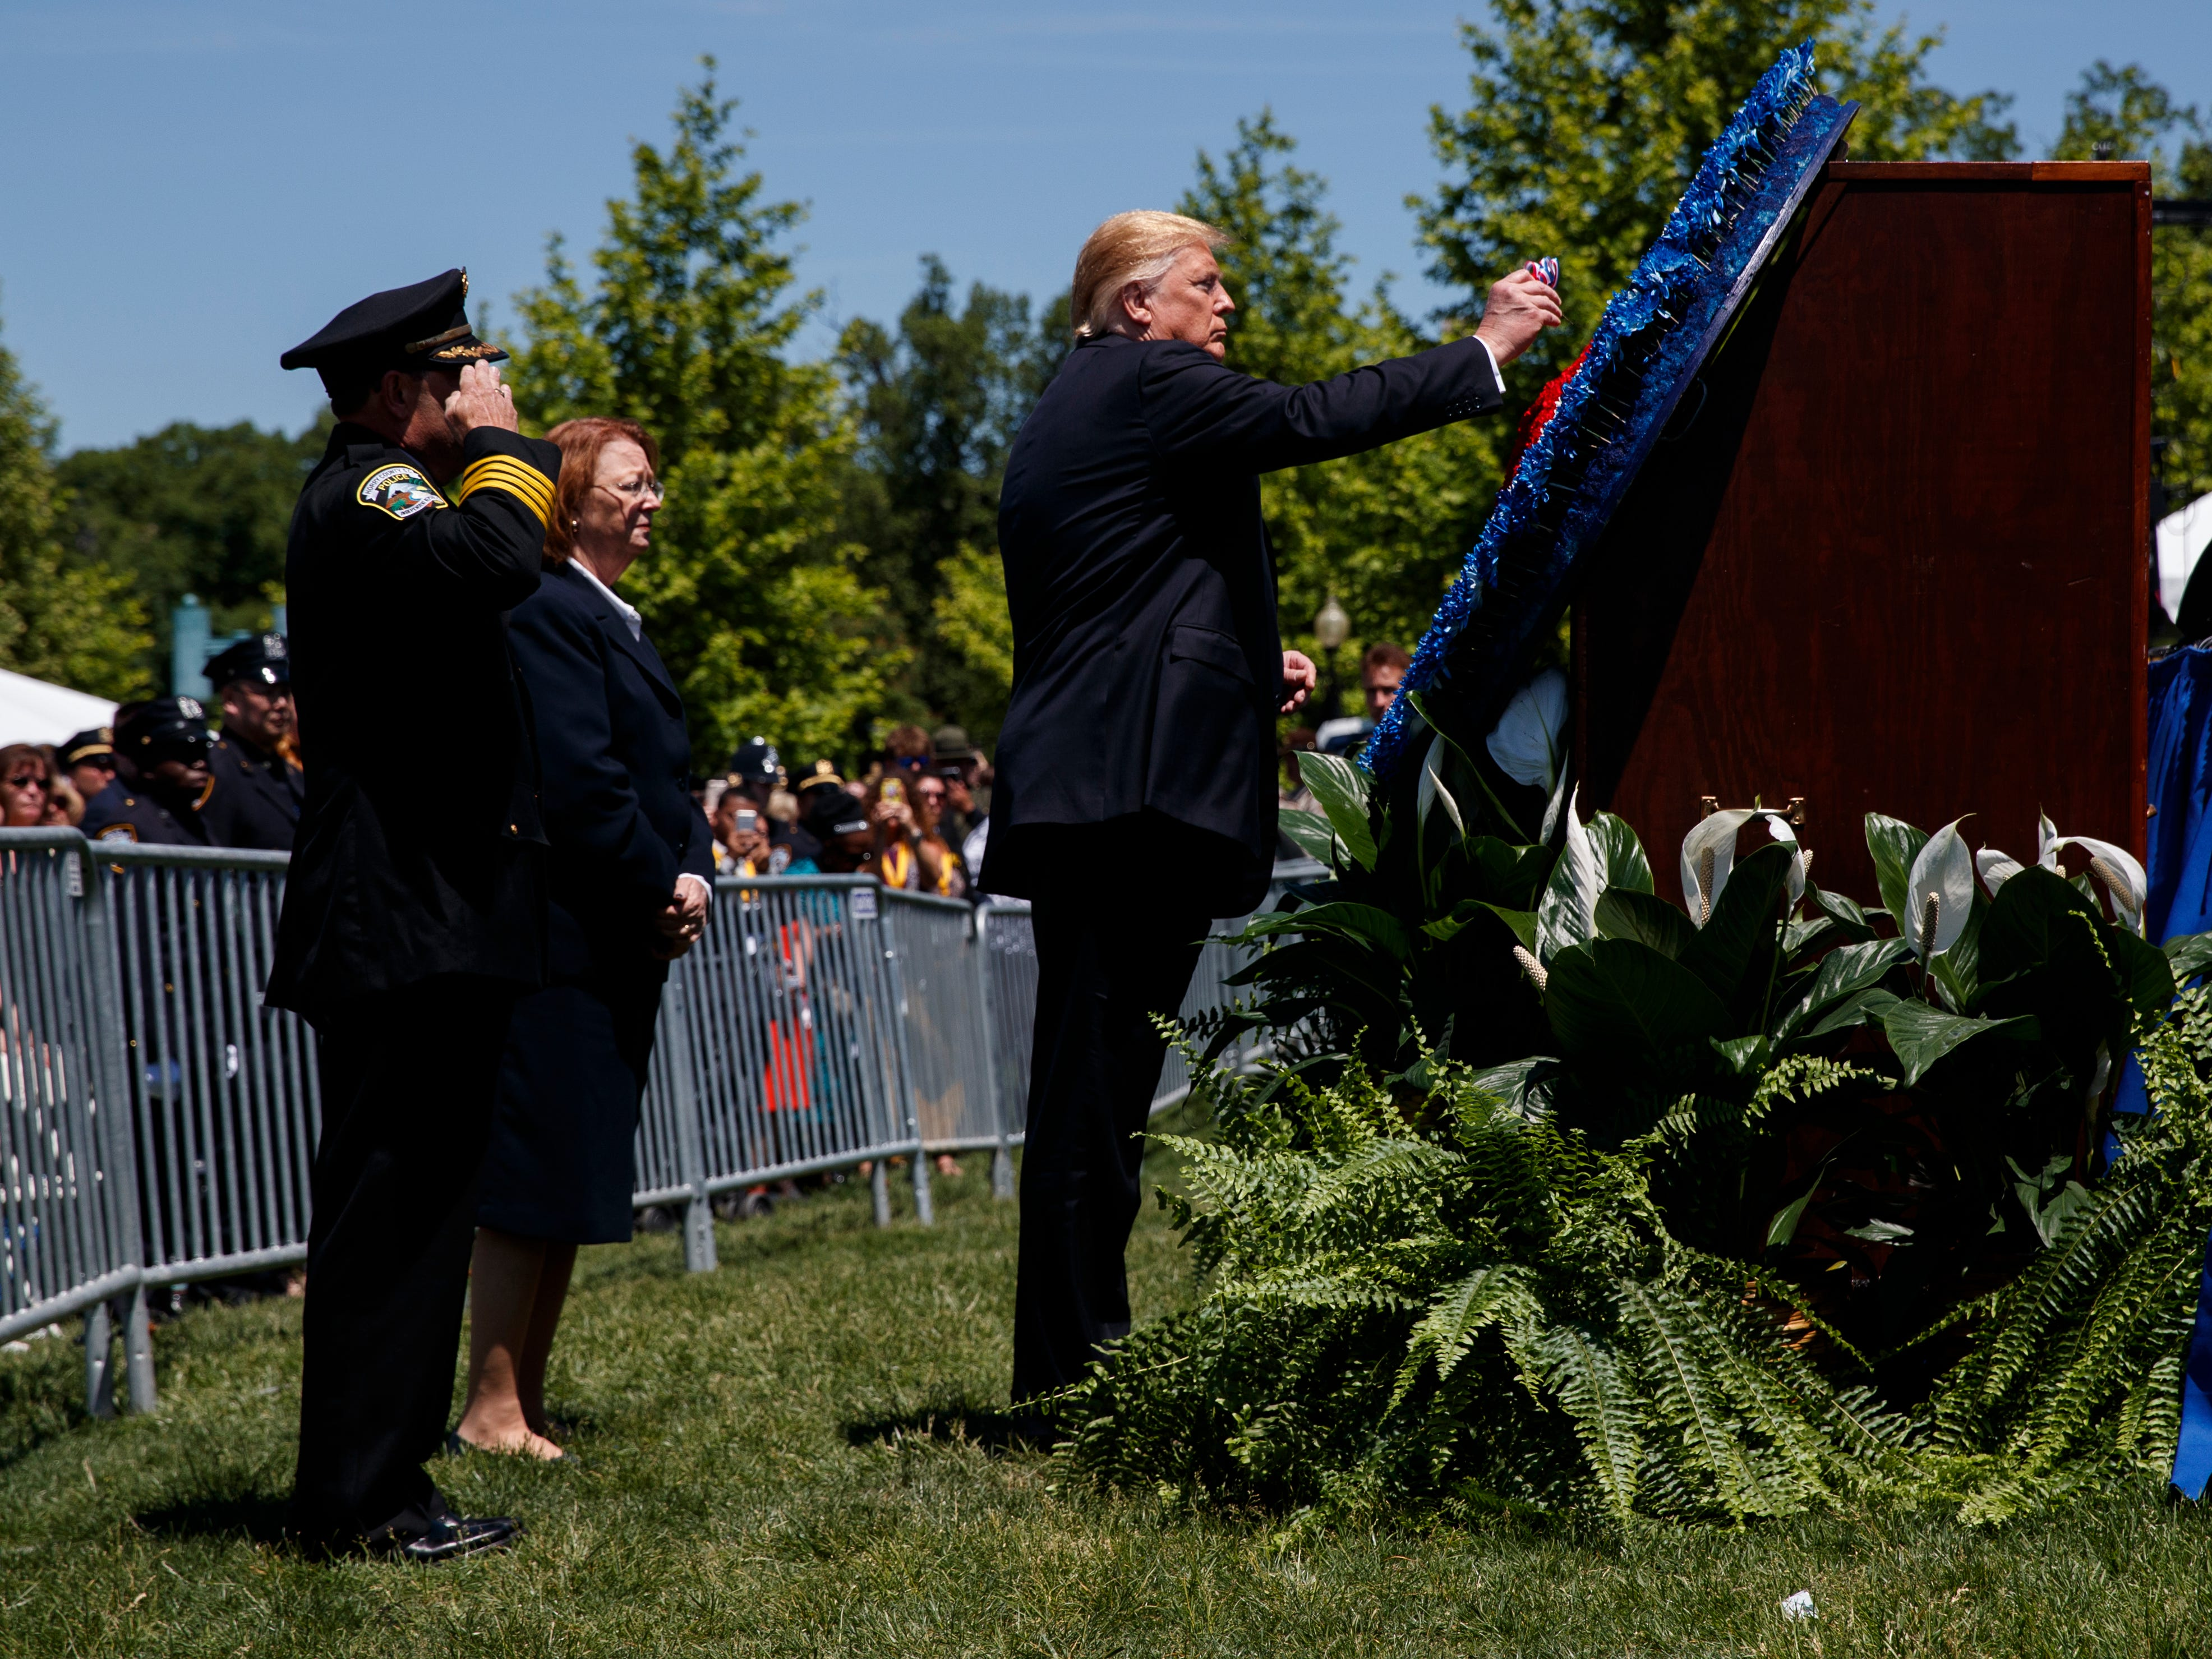 President Donald Trump places a flower in a wreath during the 38th Annual National Peace Officers' Memorial Service at the U.S. Capitol, Wednesday, May 15, 2019, in Washington.